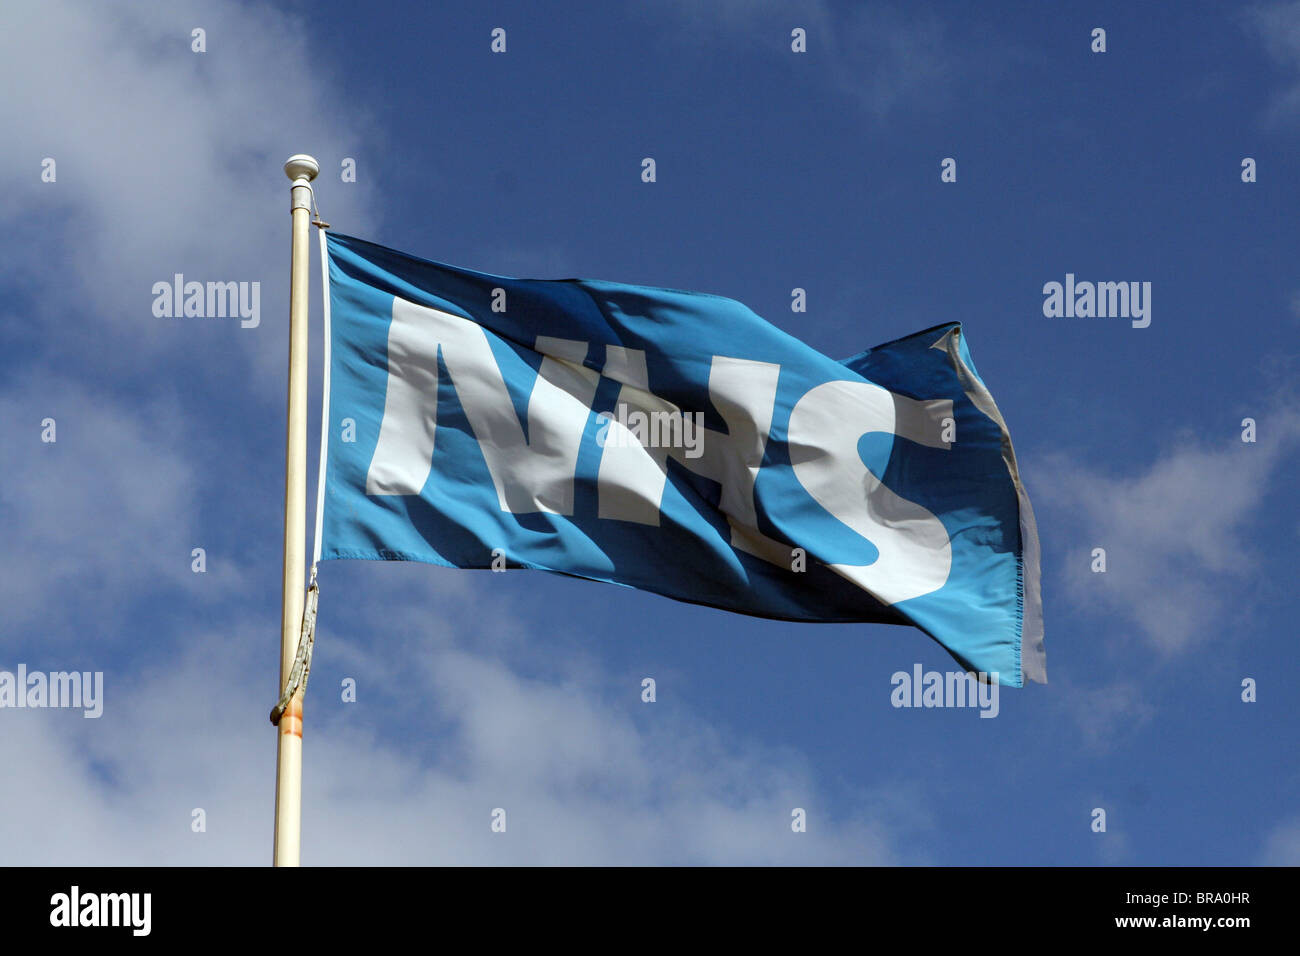 NHS (National Health Service) flag in England, UK - Stock Image